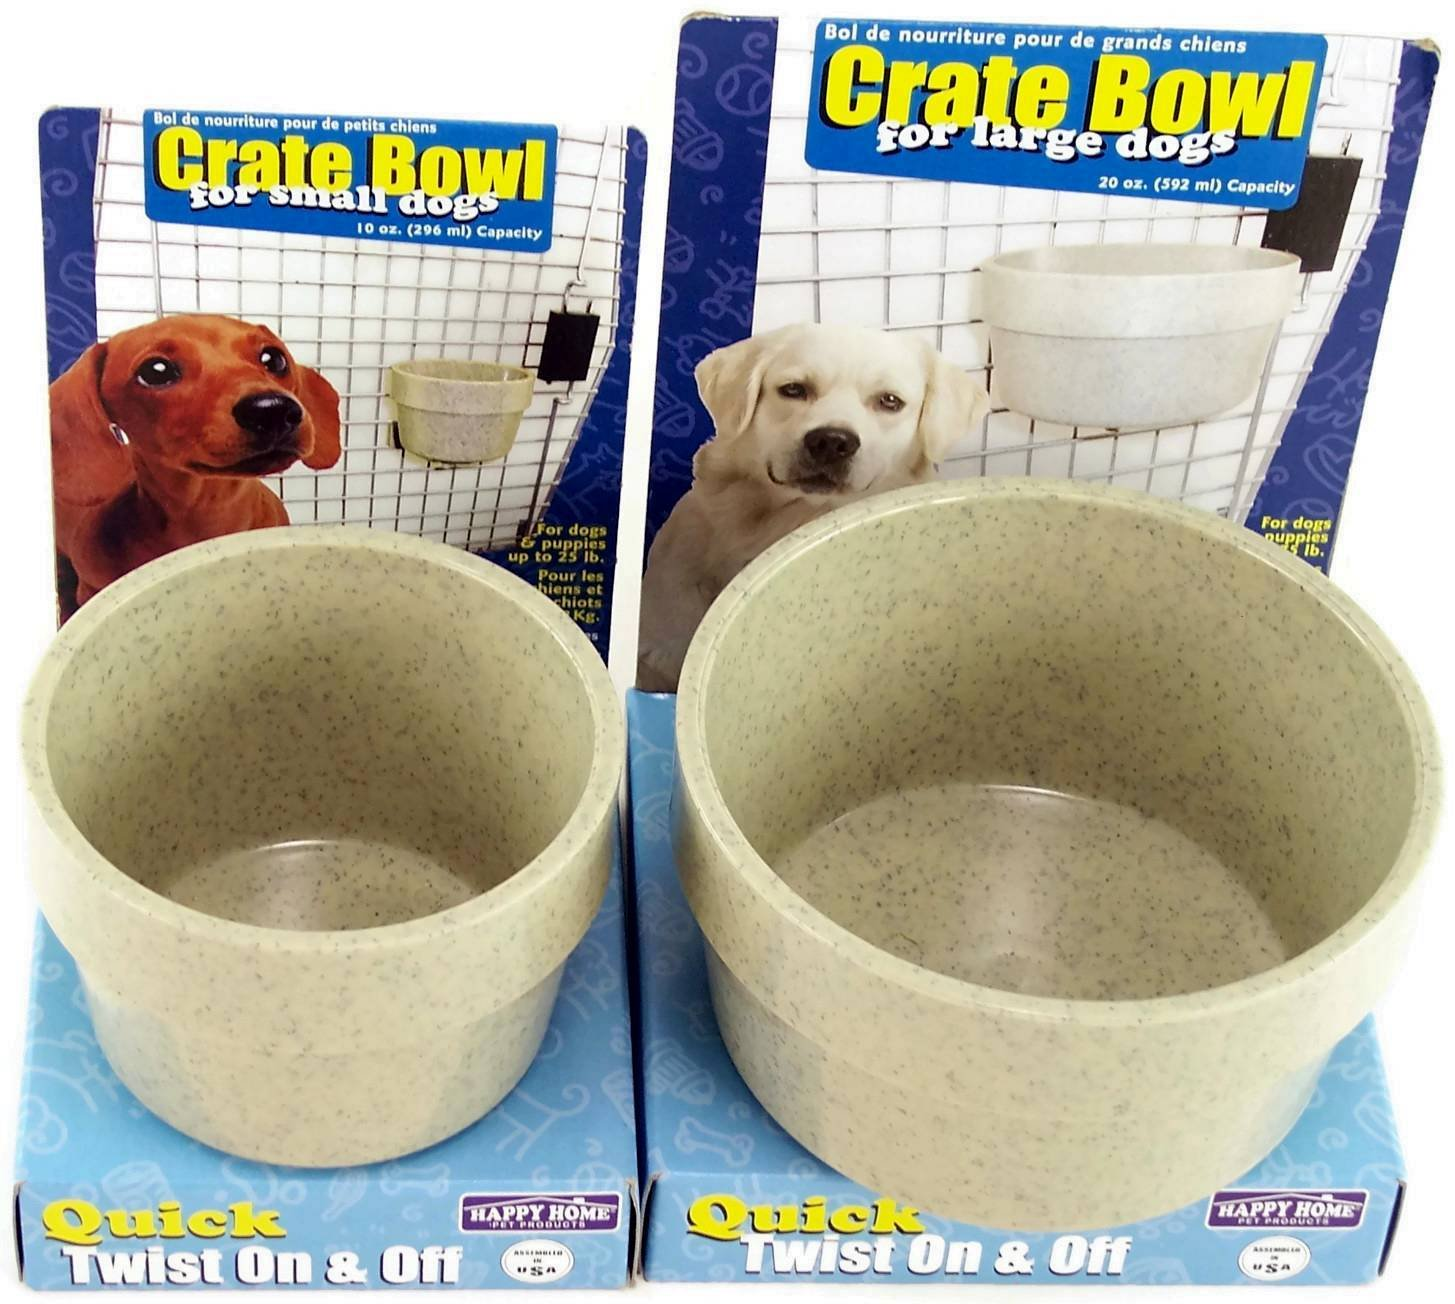 Happy Home Crate Bowl Set for Dogs and Puppies up to 75 Lbs. Bowl Size 20 Oz and for Small Dogs and Puppies up to 25 Lbs. Bowl Size 10 Oz Both Are Granite Gray Color (Bundle) by Happy Home pet Products